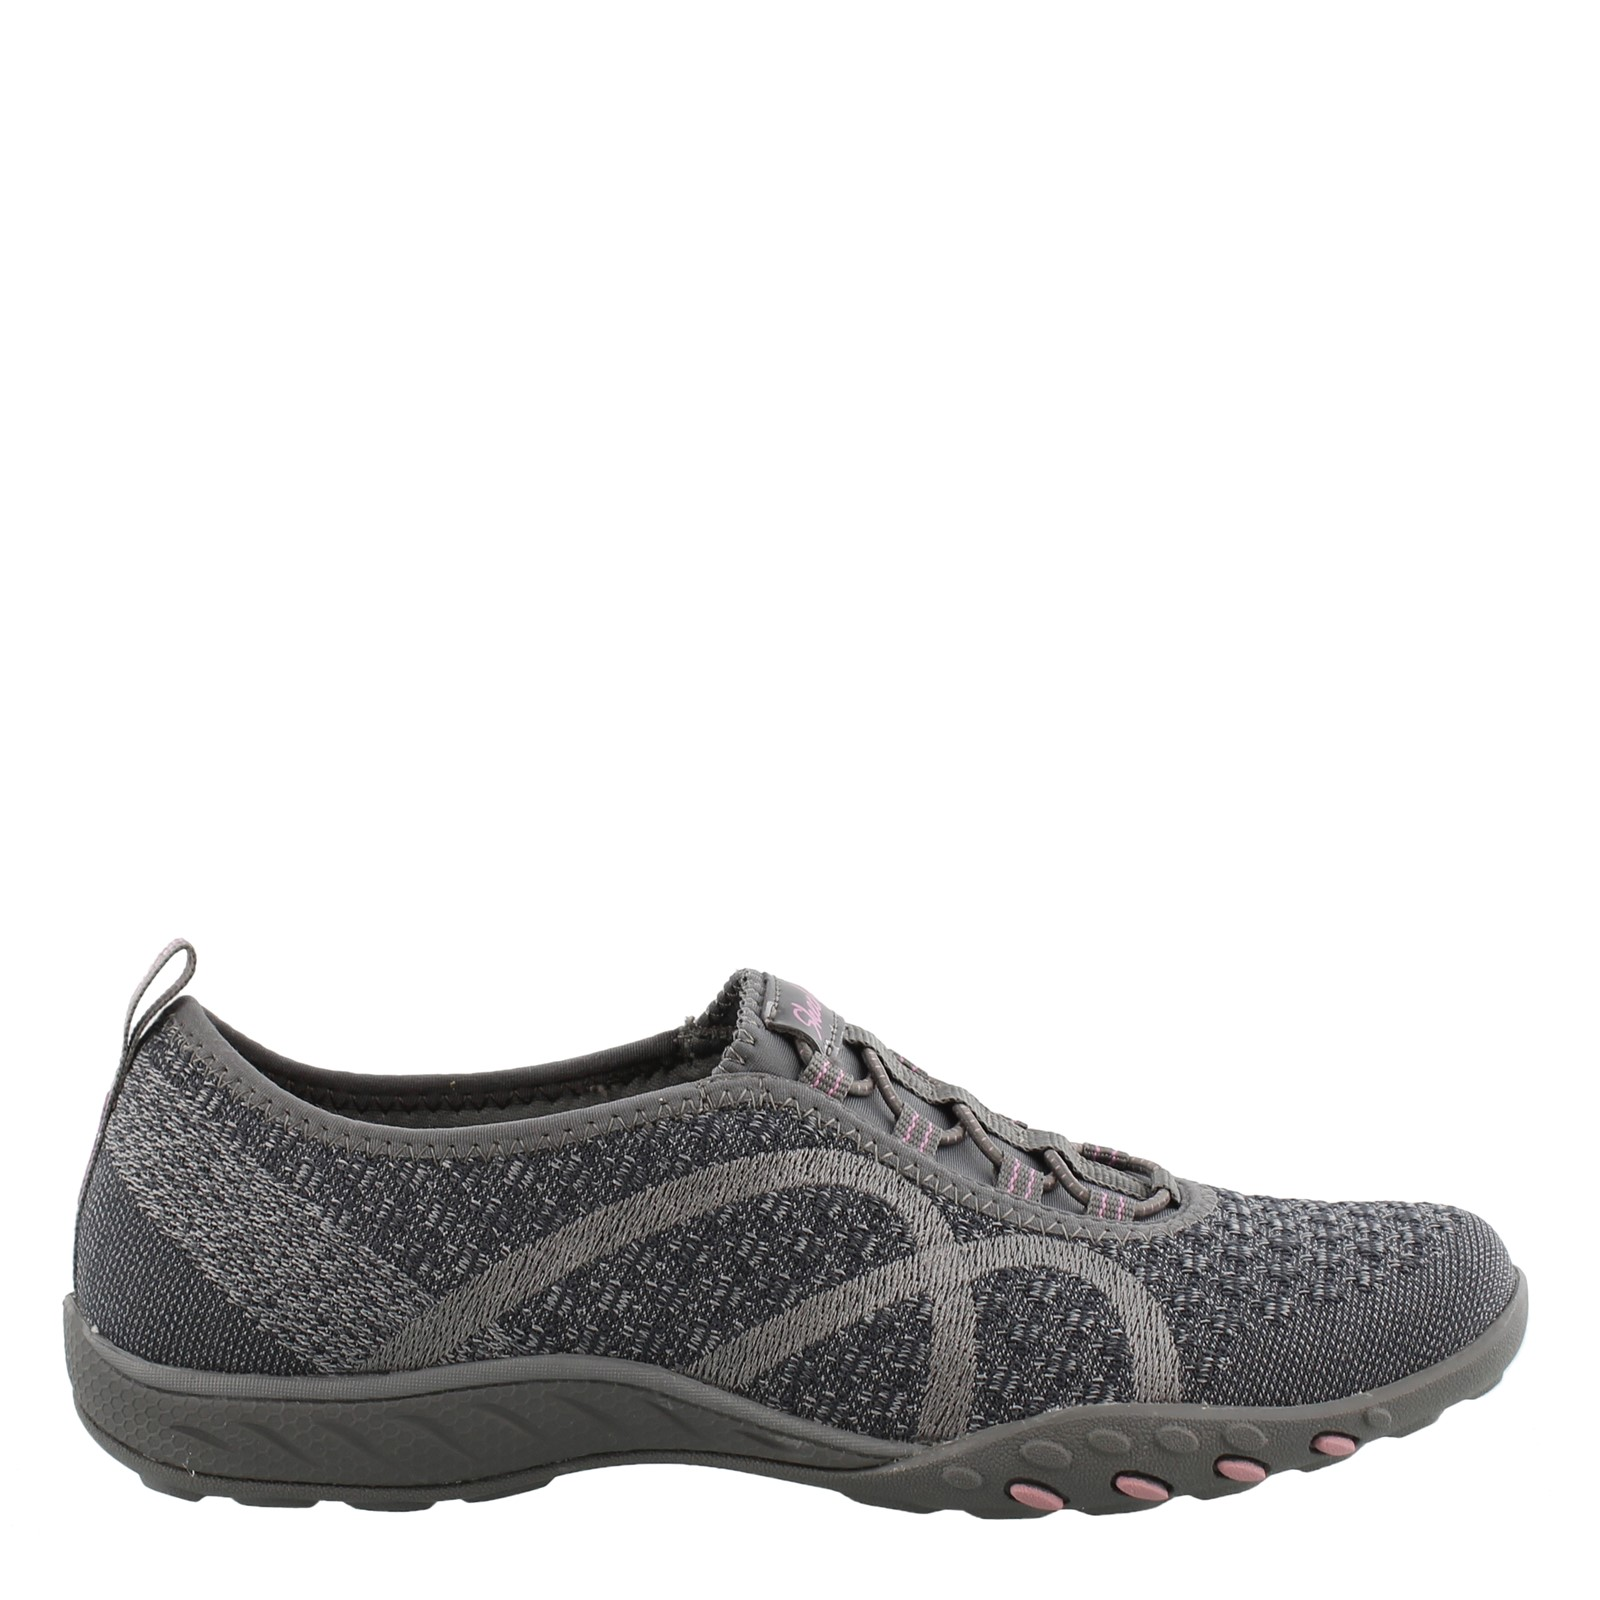 1811f608b28 Home; Women's Skechers, Relaxed Fit Breathe Easy Fortune-Knit. Previous.  default view ...